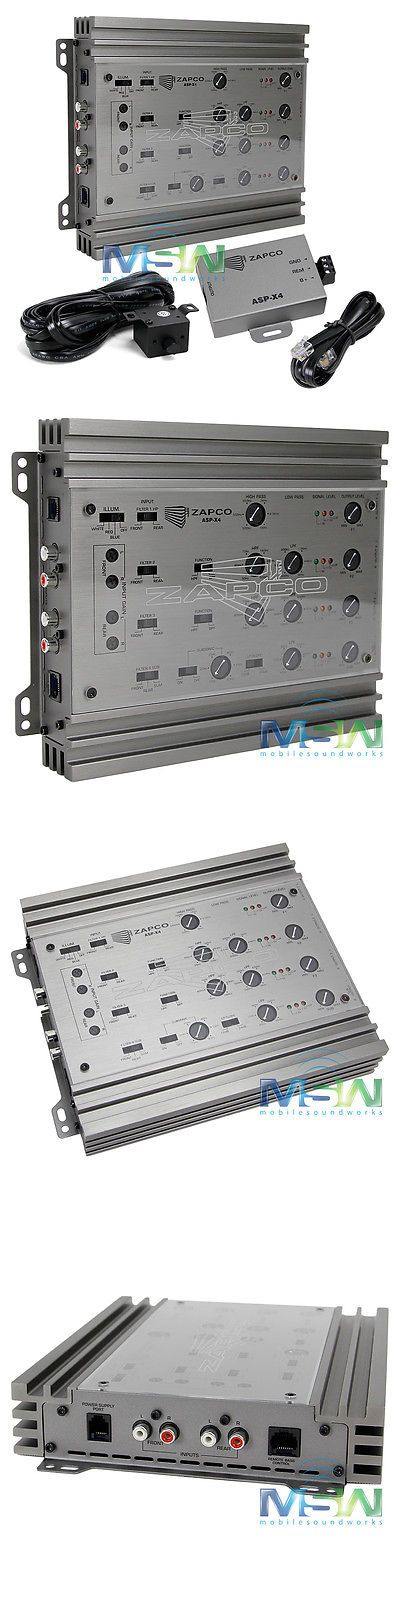 Signal Processors: Zapco Asp-4X 2 3 4-Way Audiophile Grade Car Audio Electronic Crossover Aspx4 X4 -> BUY IT NOW ONLY: $399.95 on eBay!